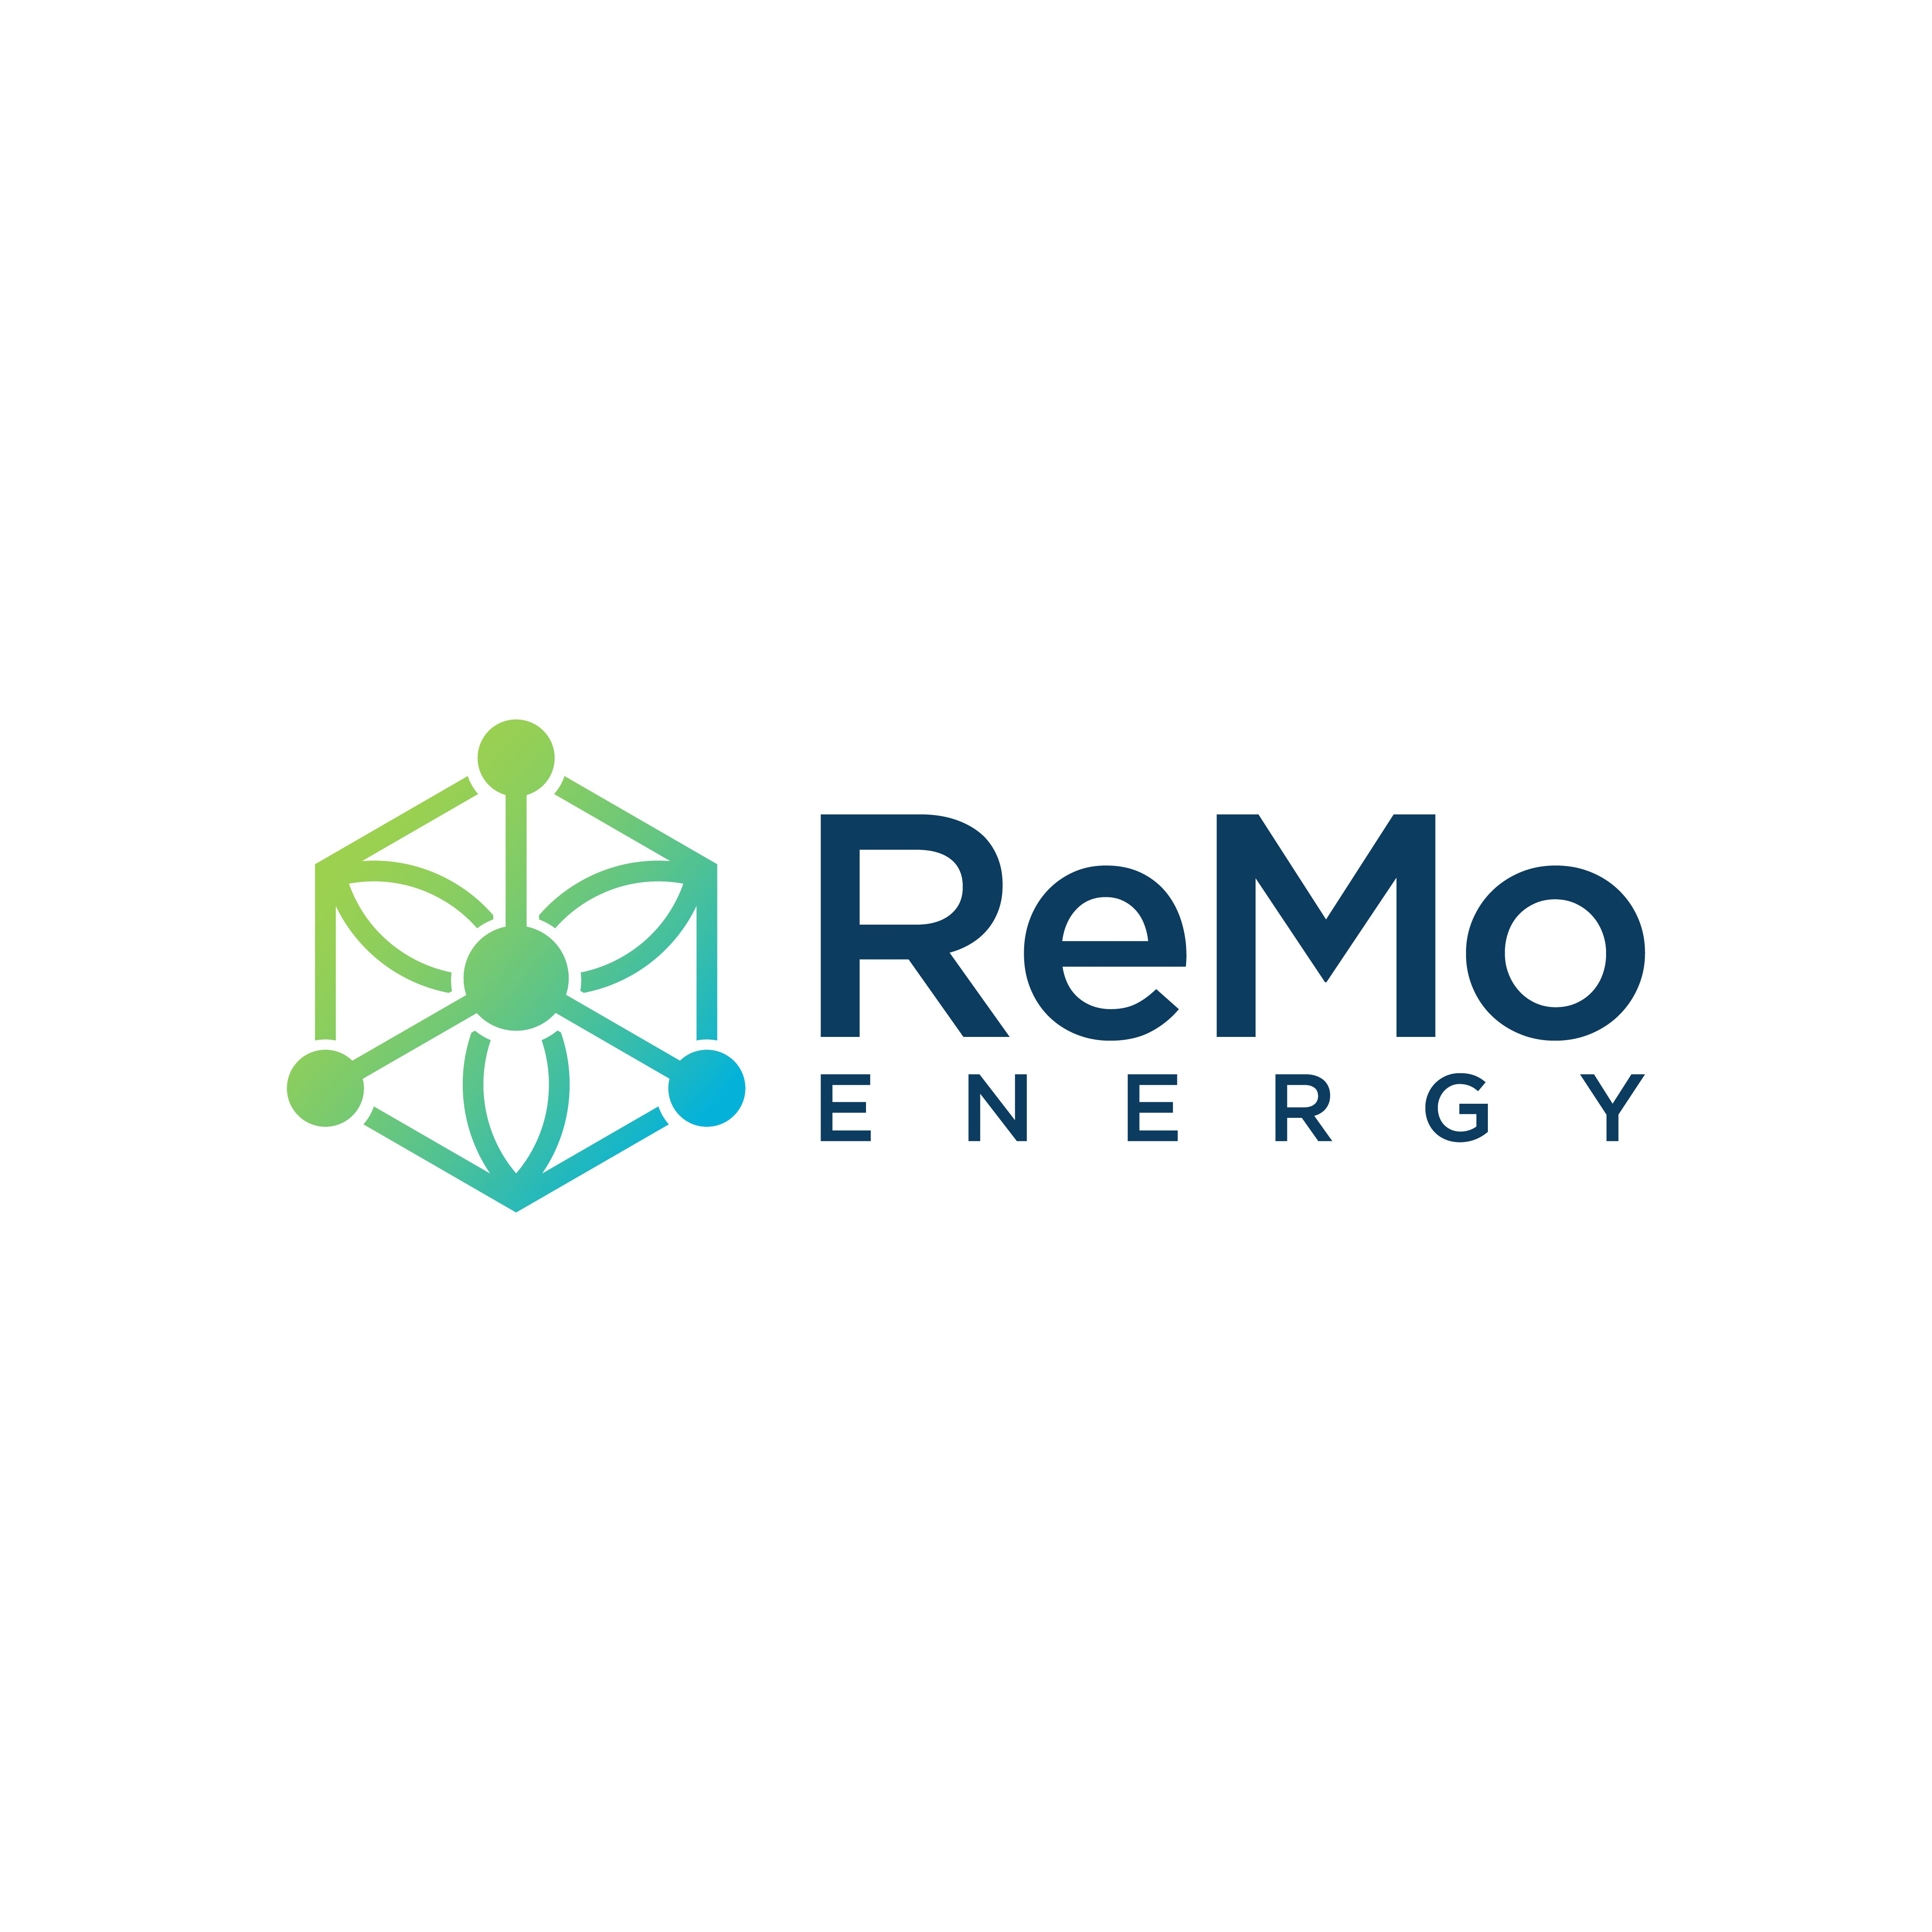 Logo for a new phase of renewable energy - making renewable molecules (ReMo)